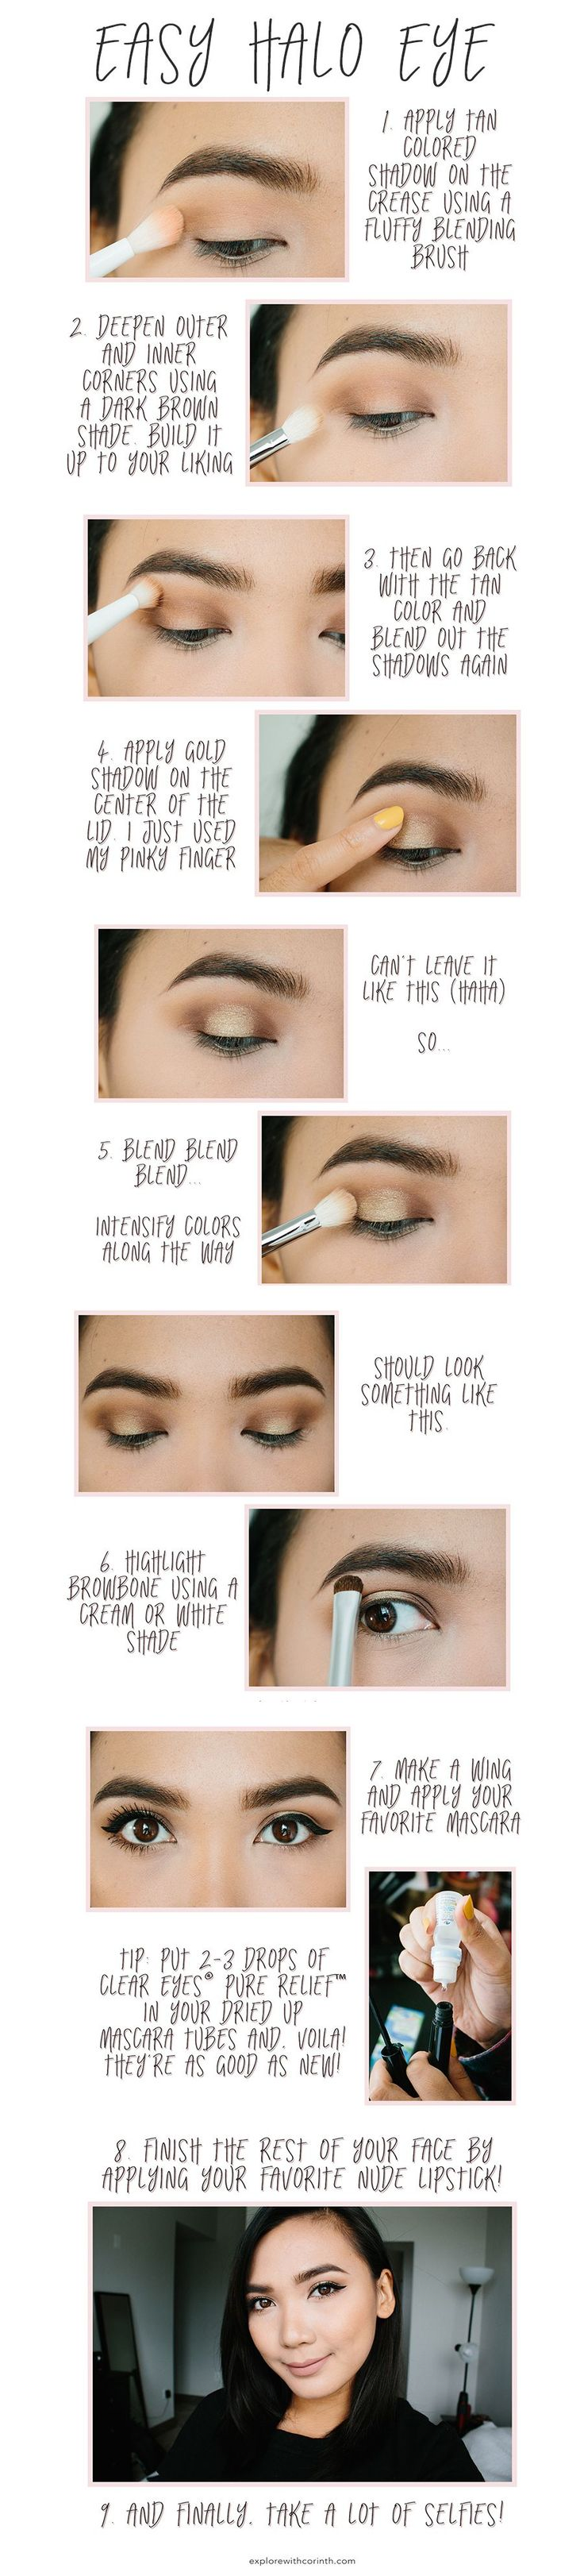 Easy Halo Makeup Tutorial   http://explorewithcorinth.com/blog/easy-glam-halo-eye-makeup-look #MyPureRelief #Sponsored